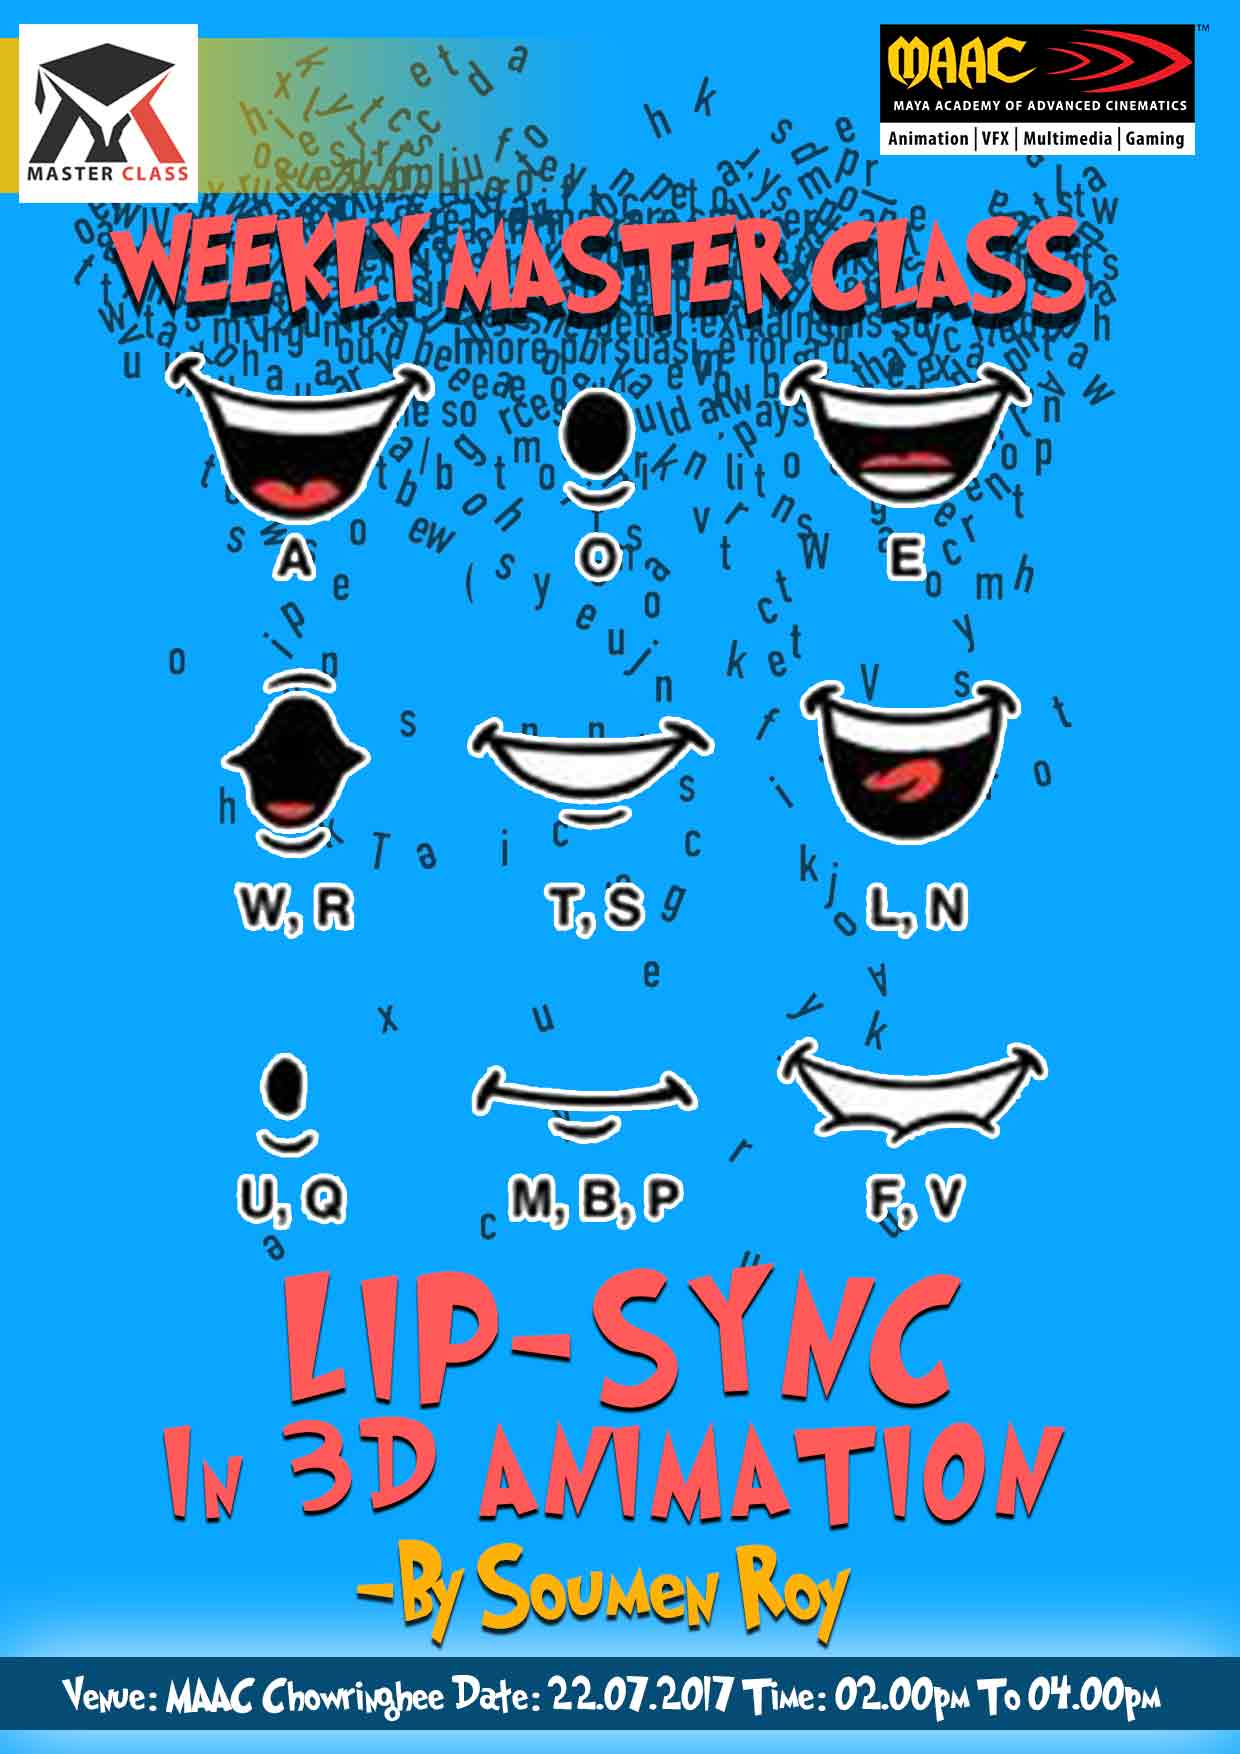 Weekly Master Class on Lip-Sync in 3D Animation - Soumen Roy